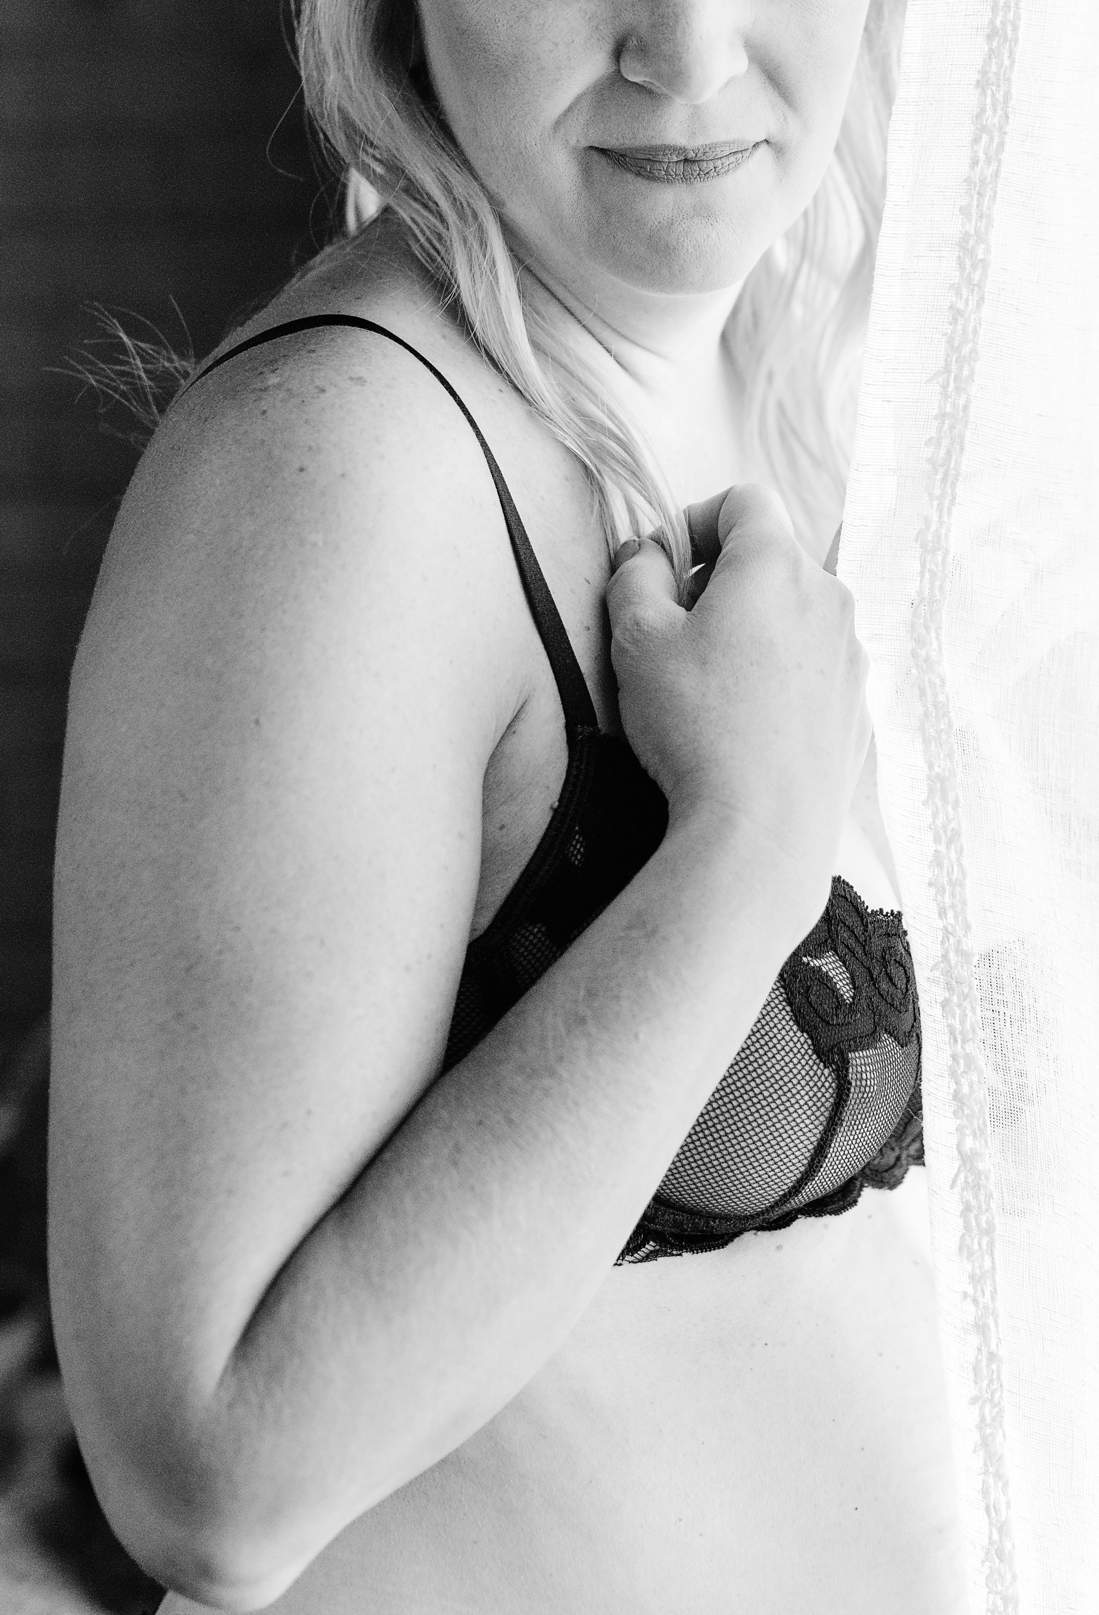 black and white boudoir photo by self love photo co woman in lingerie peeking out from curtain